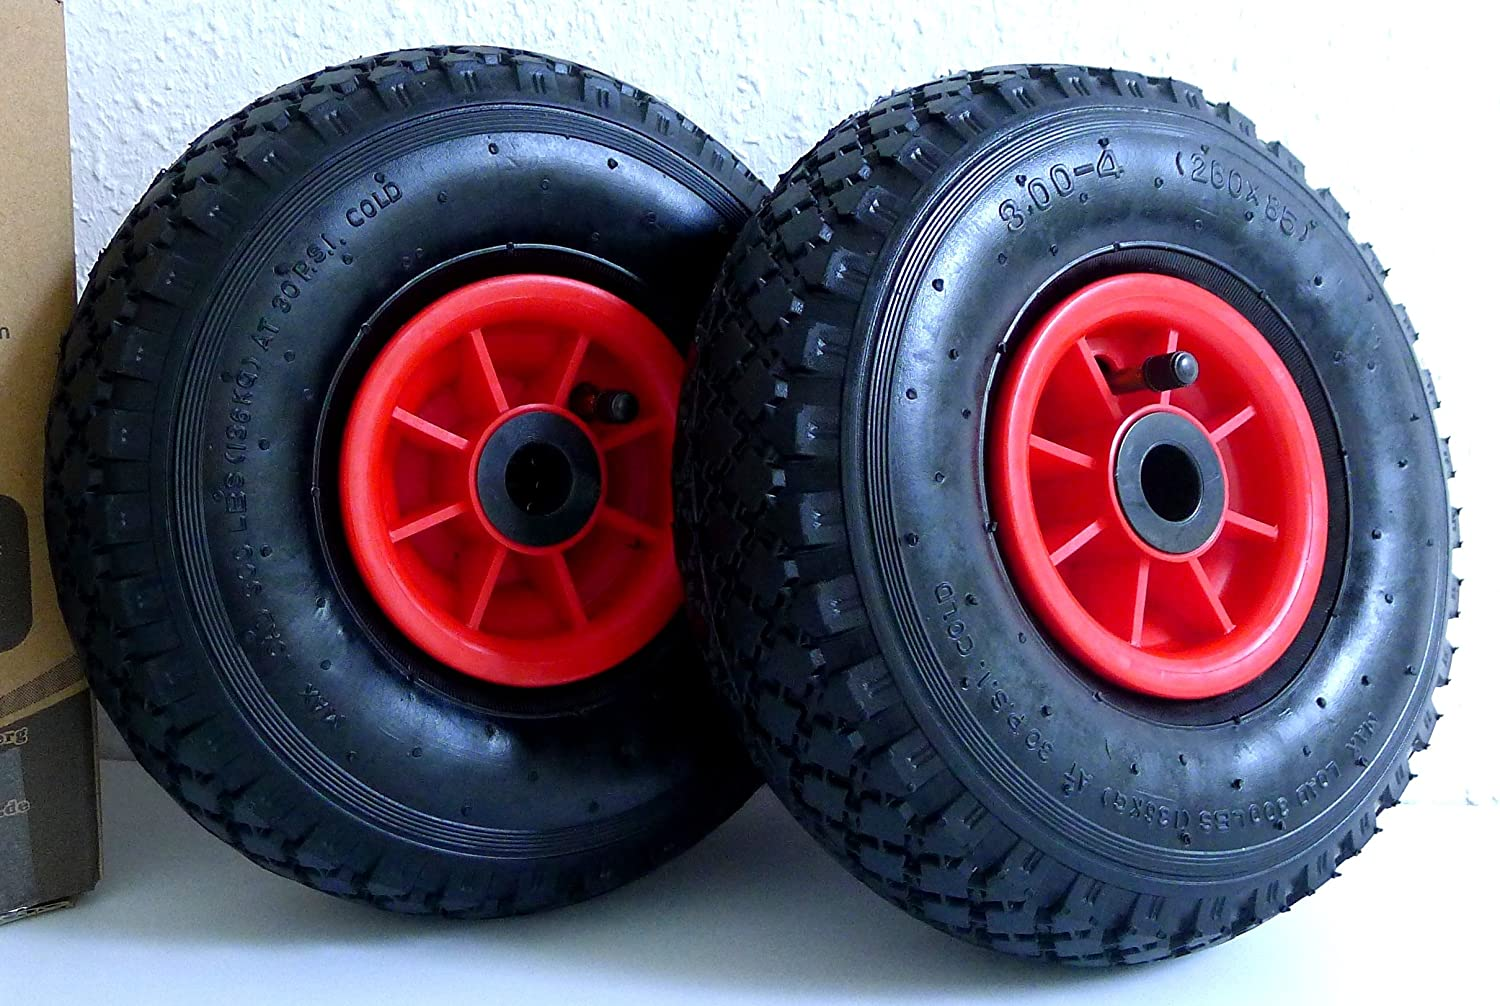 2 x sack trolley wheel pneumatic tyre 3.00-4  (2P.R), 260 mm x 85  mm, sack truck spare tyre D&F